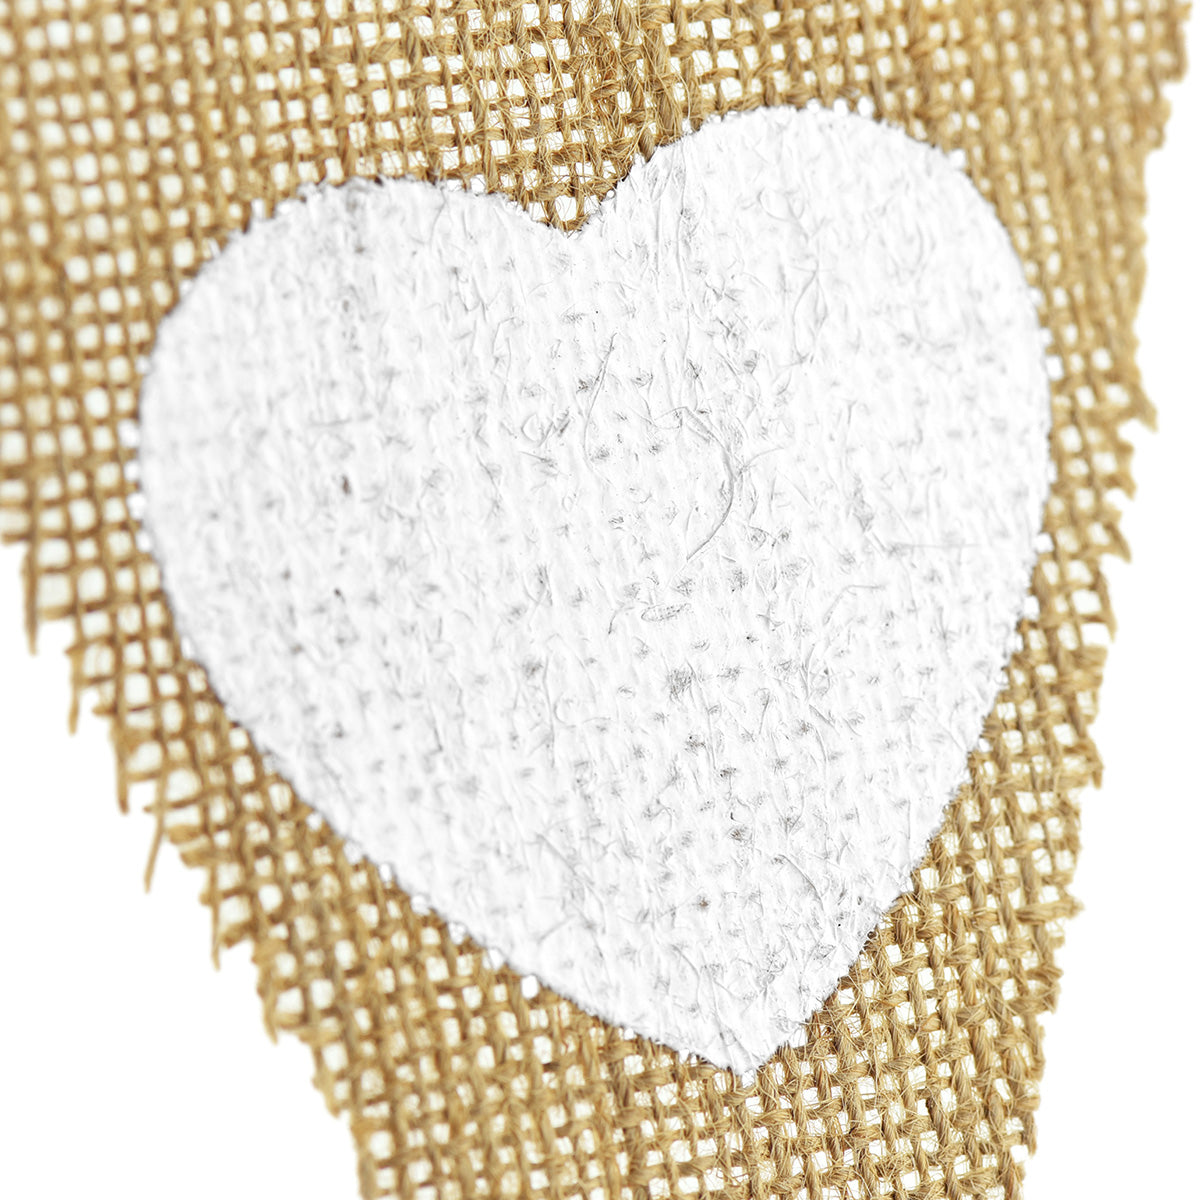 Burlap Pennant Banner with Heart Patterns - FiveSeasonStuff